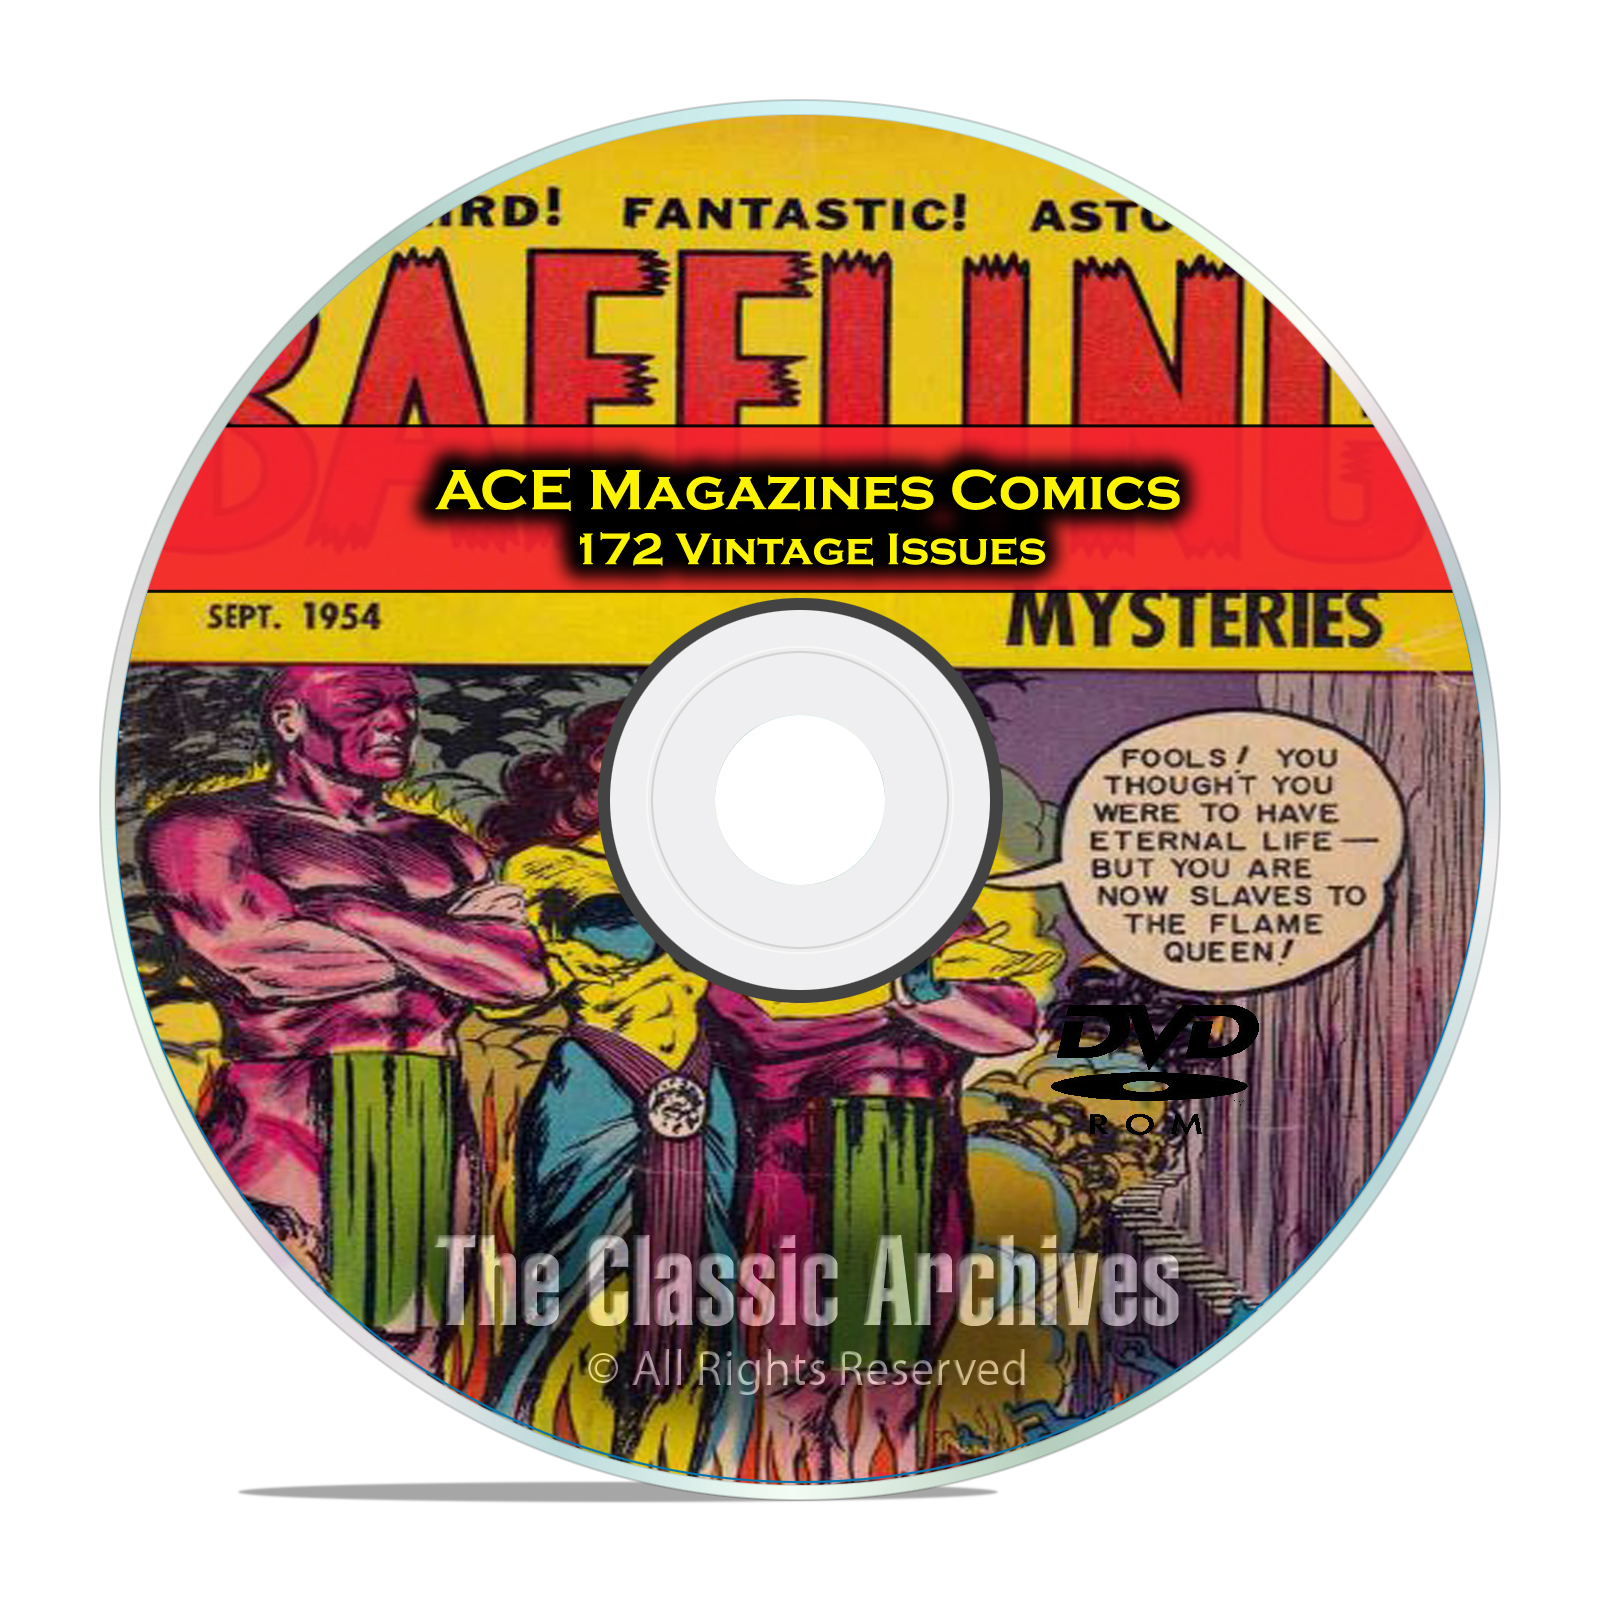 Baffling Mysteries, Beyond Lightning Comics 172 Issue Golden Age Comics DVD